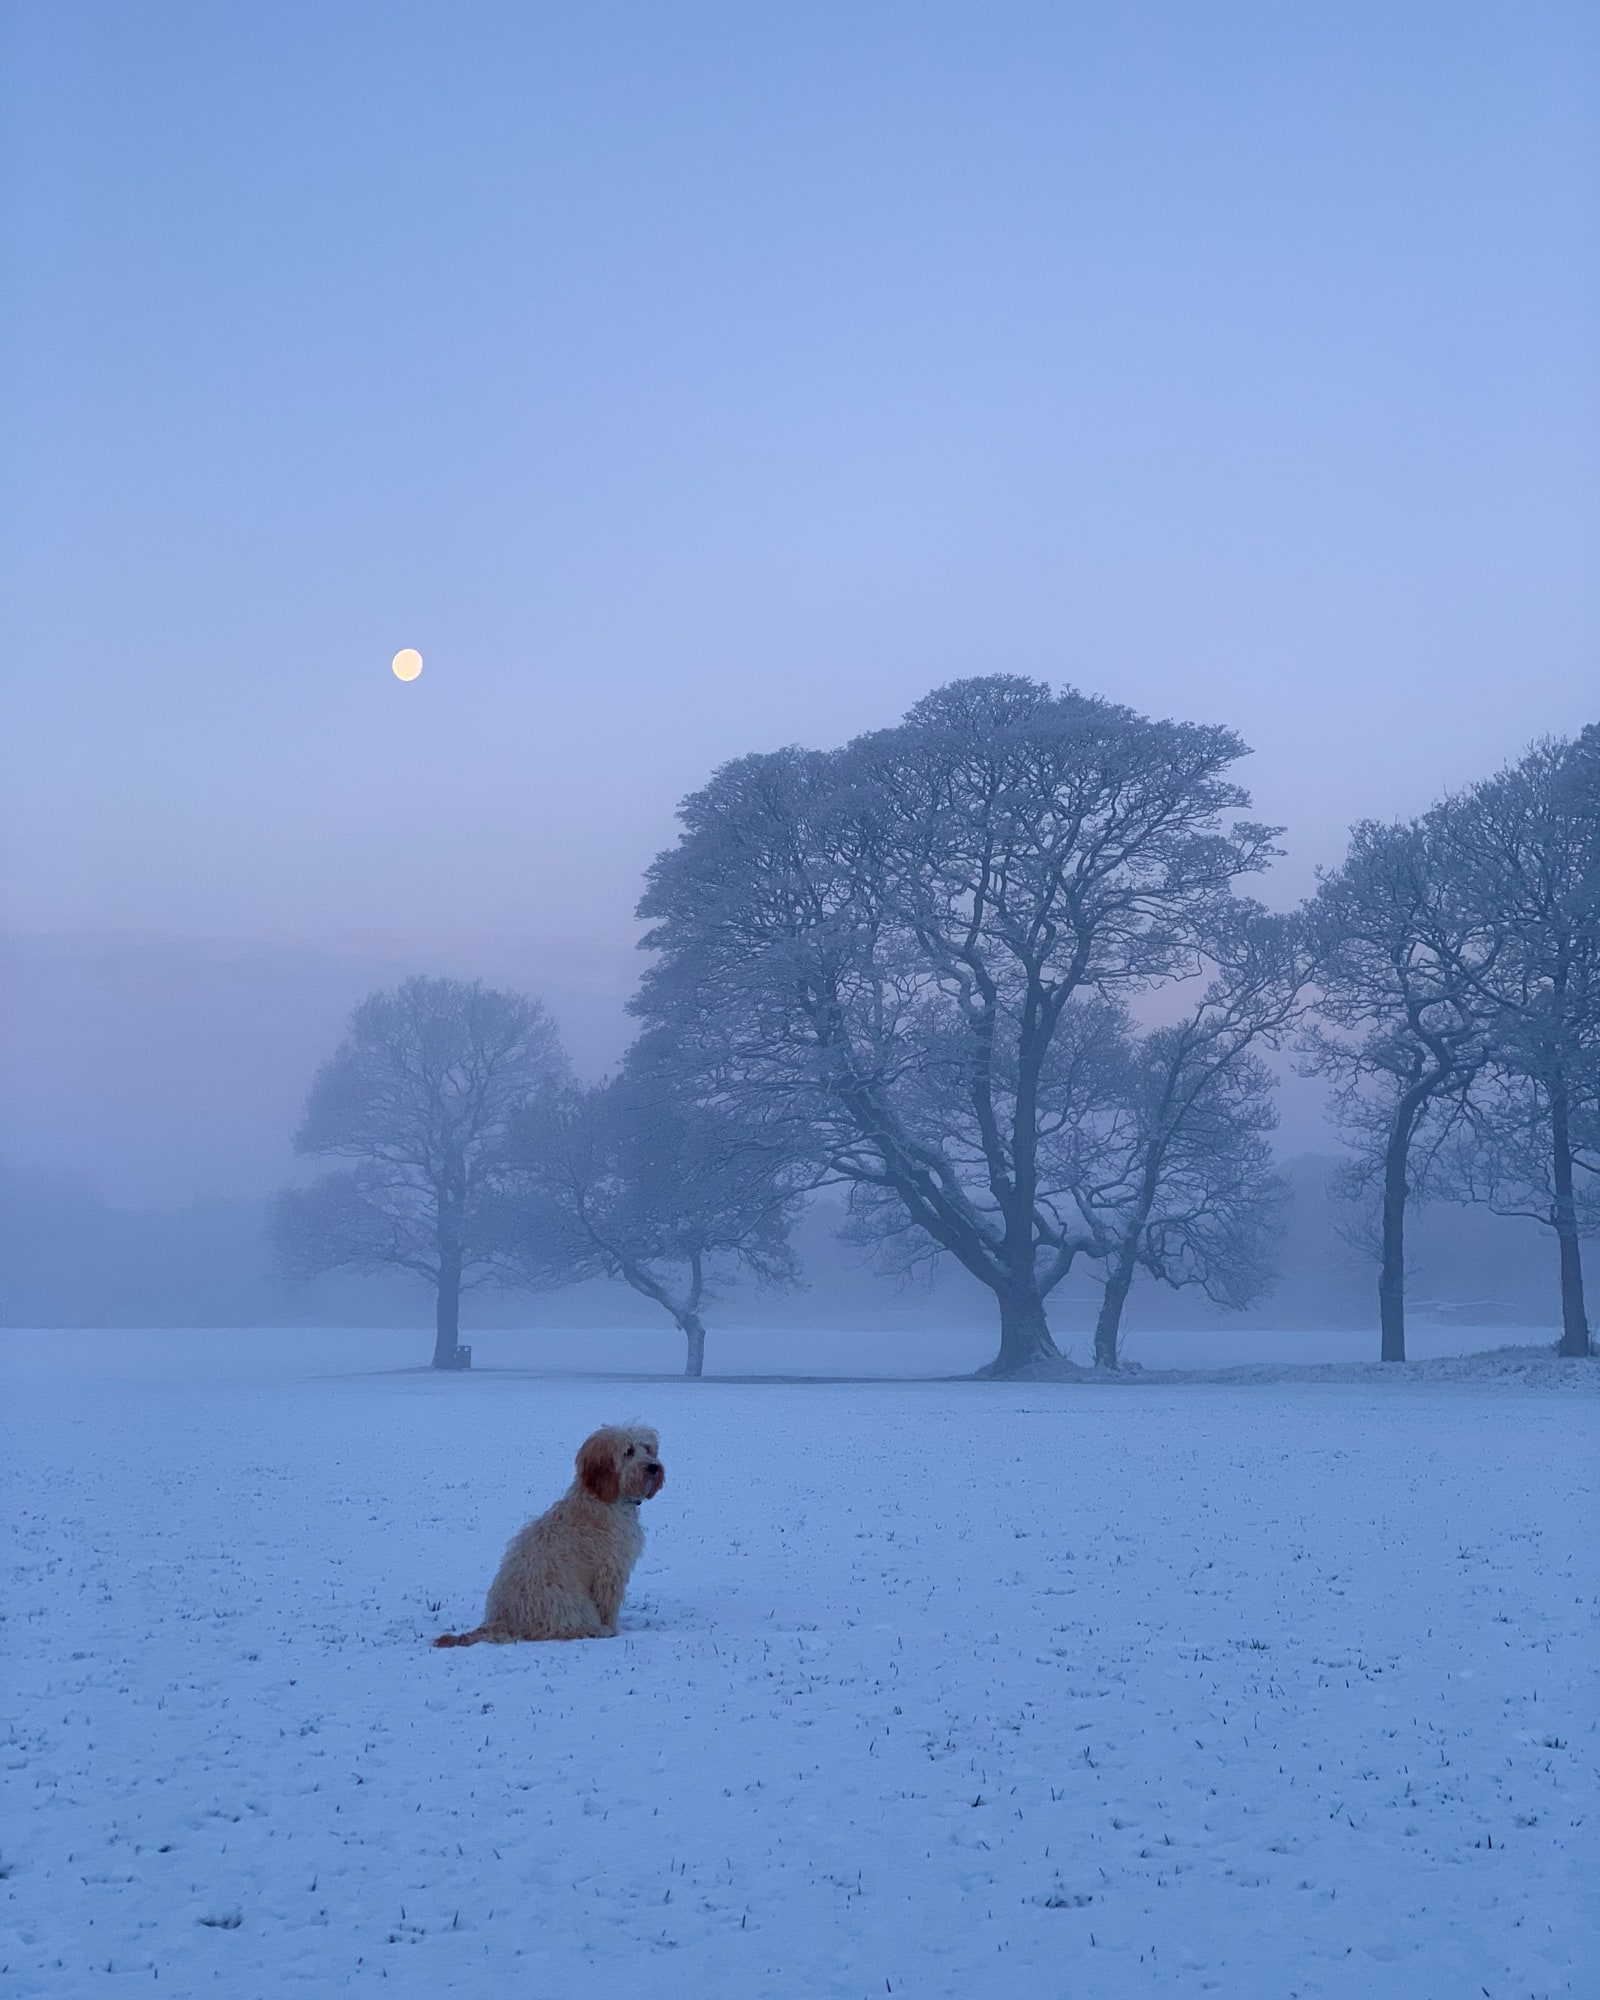 Apricot cockapoo on an early morning in the snow, with trees in the background